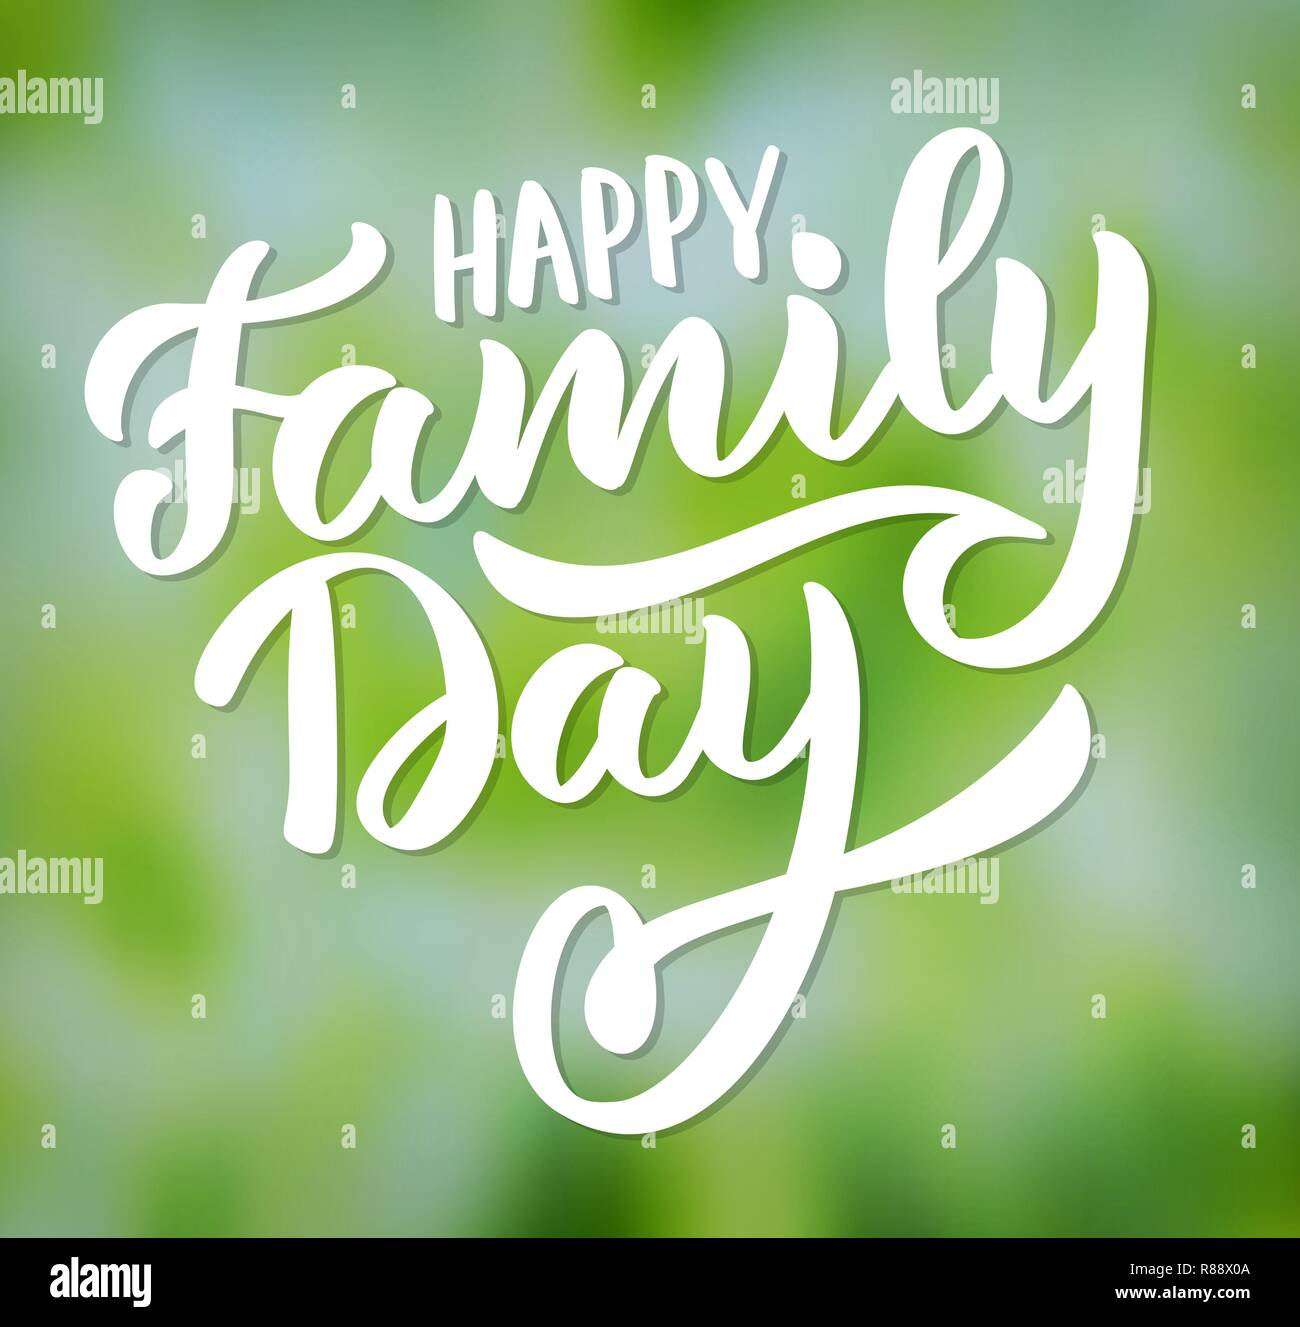 Happy Family day- typography, hand-lettering, calligraphy, colorful vector illustration for greeting card, poster, banner, flyer, print, web. Green blurred background with white text. - Stock Vector